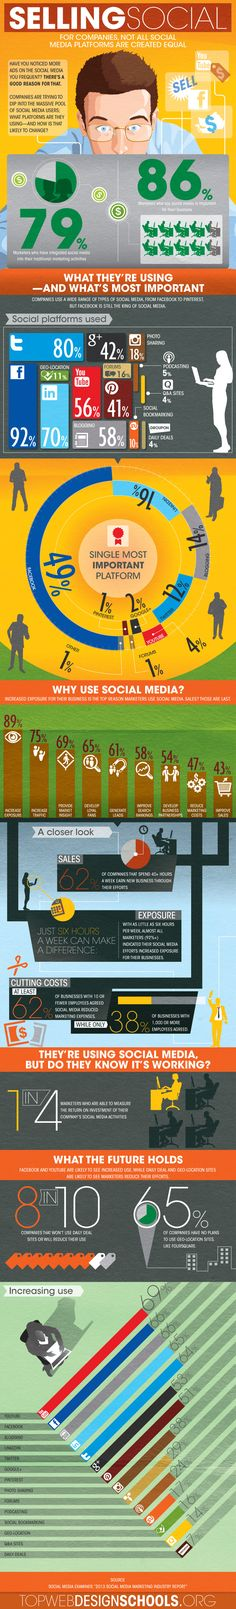 How businesses use social media Infographic #infographic